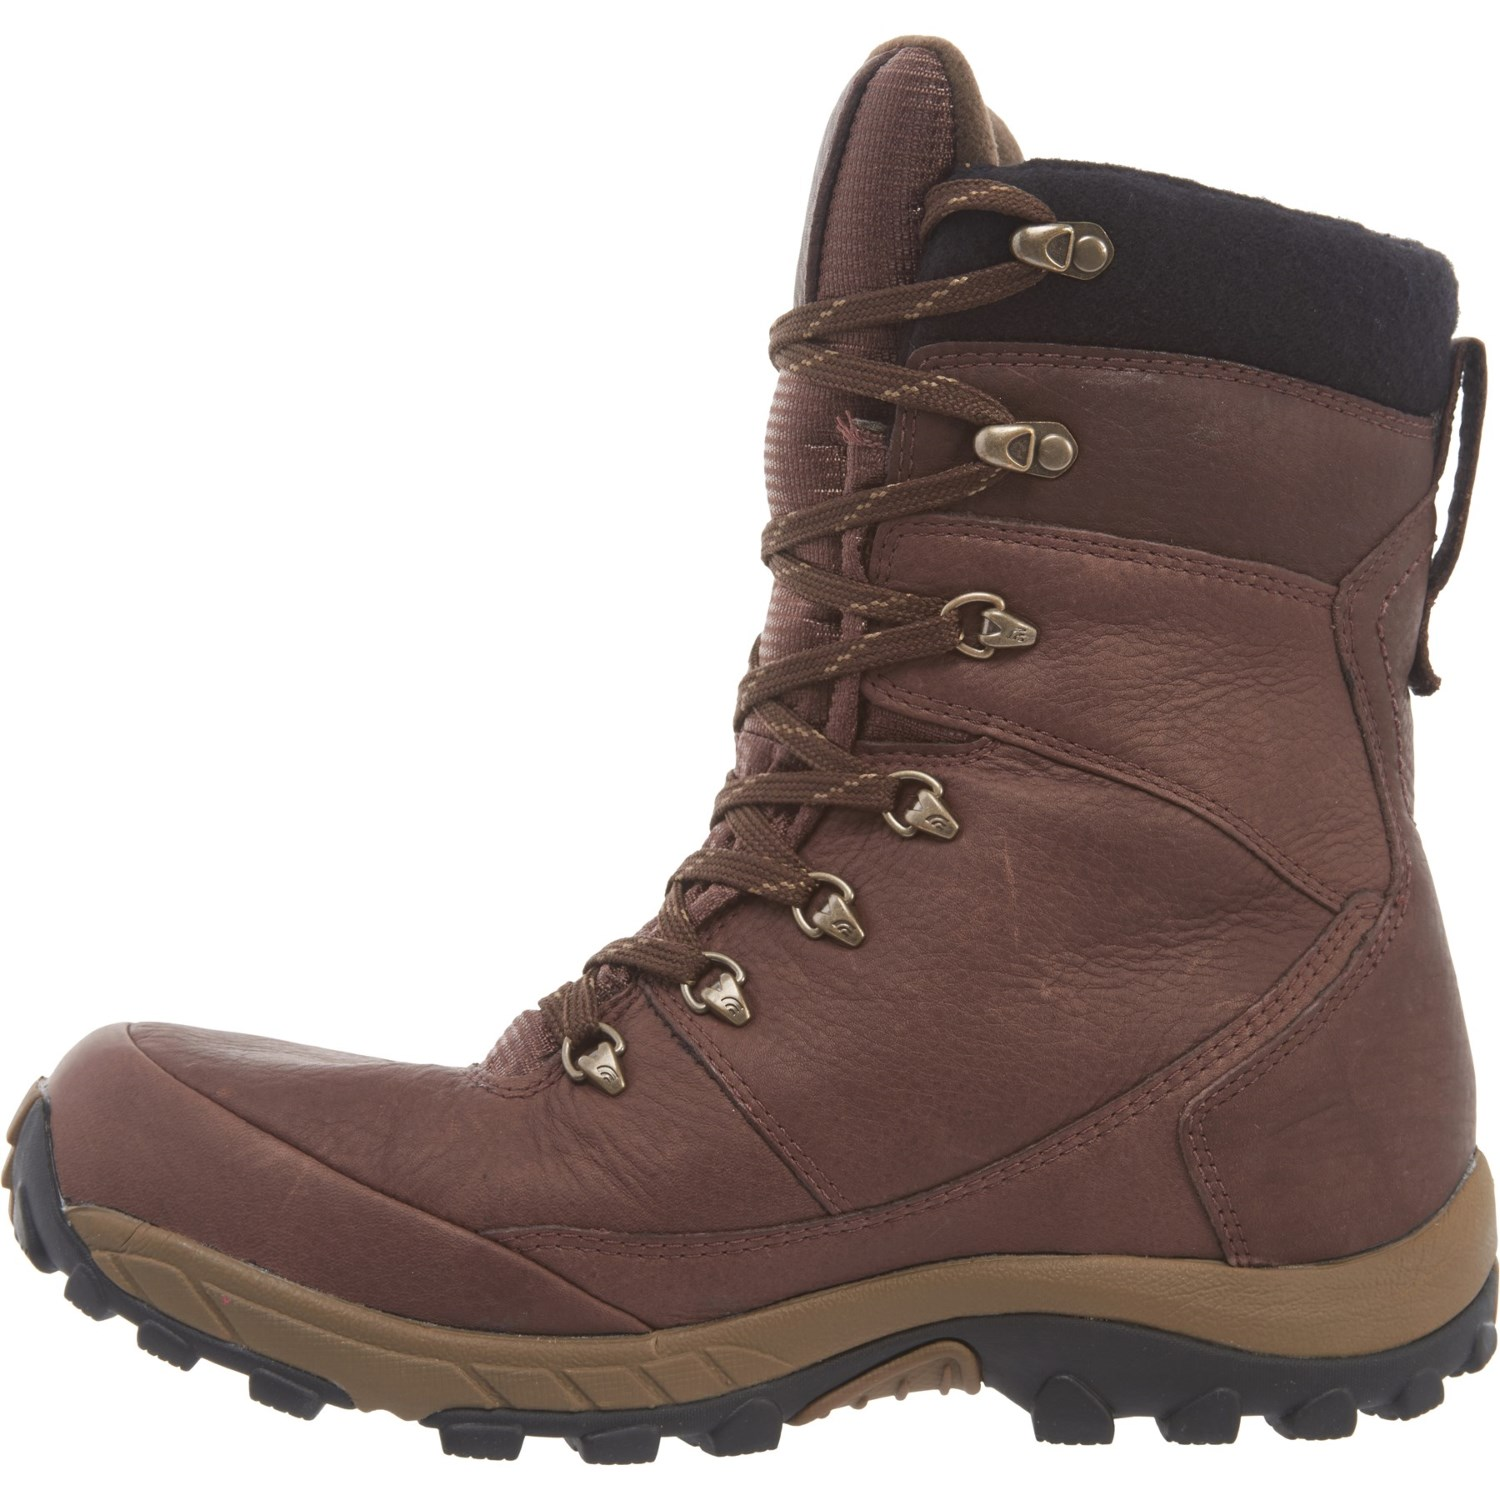 11a5ee1fc The North Face Chilkat Leather Tall Boots - Waterproof, Insulated (For Men)